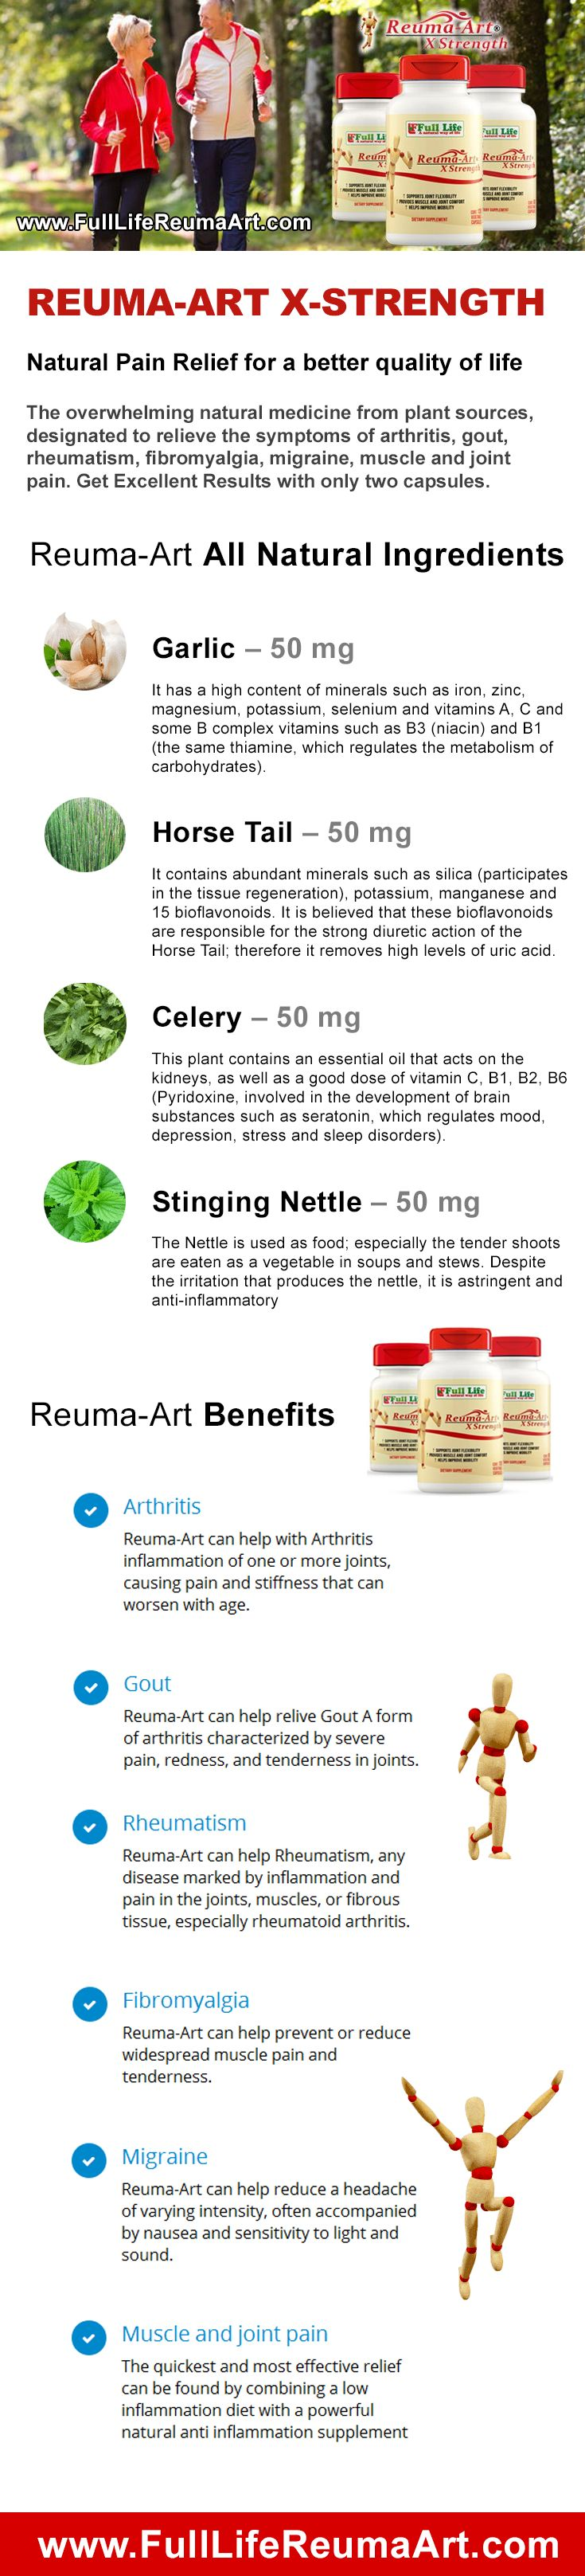 Reuma-Art X Strength Natural Pain Relief for a better quality of life The overwhelming natural medicine from plant sources, designated to relieve the symptoms of arthritis, gout, rheumatism, fibromyalgia, migraine, muscle and joint pain. Get Excellent Results with only two capsules.